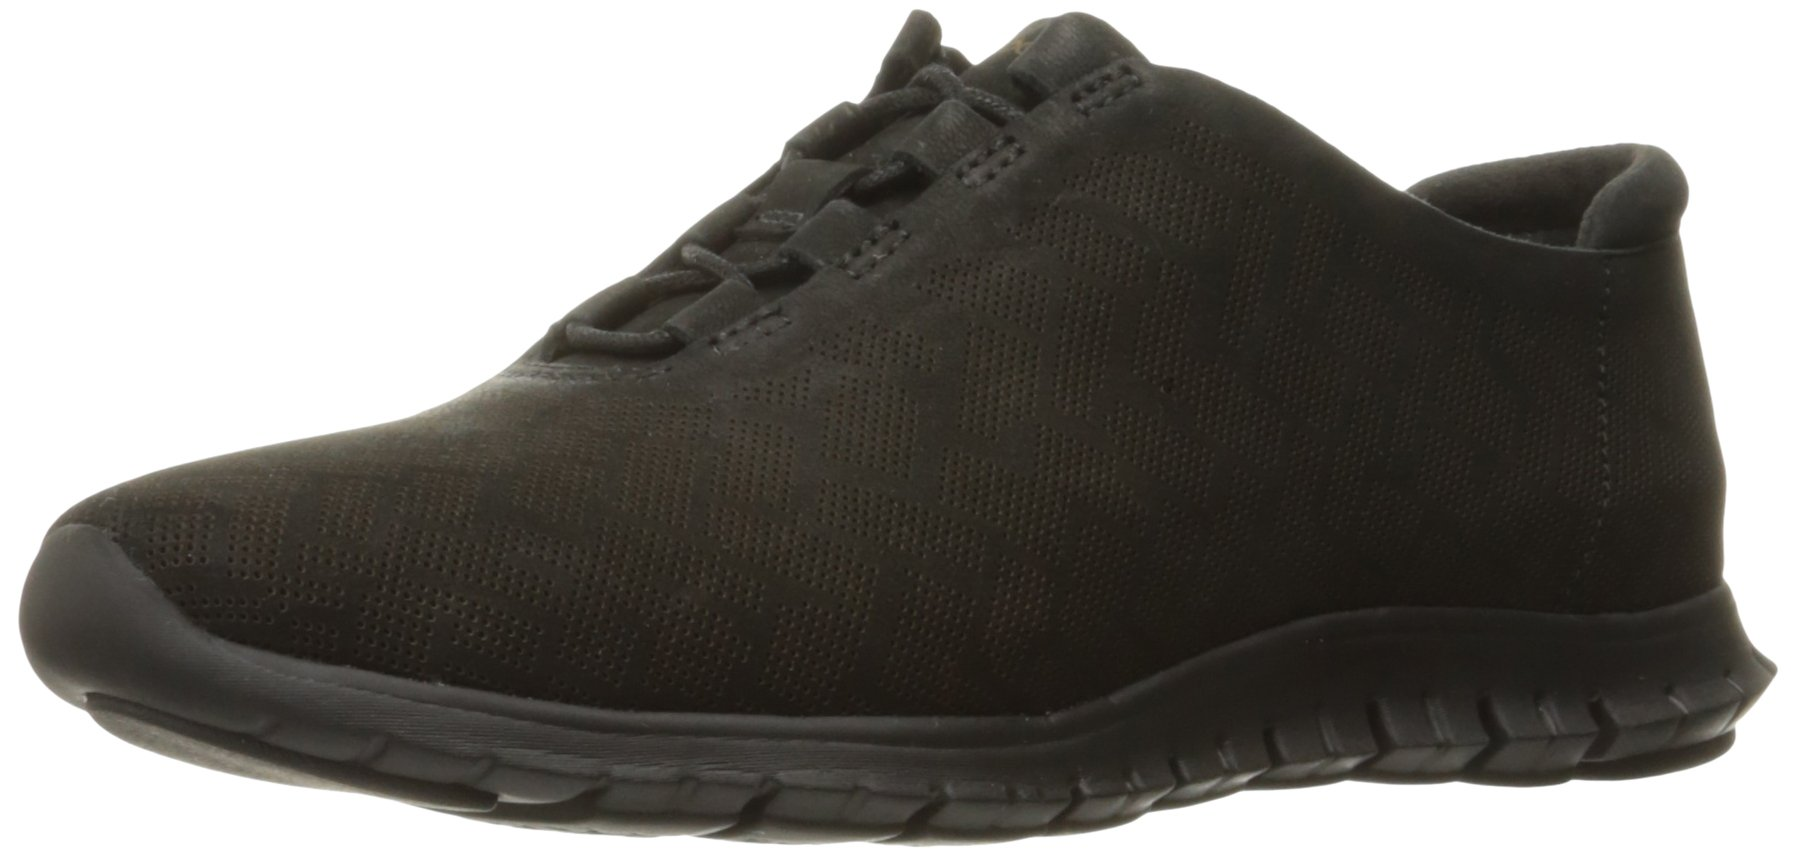 Cole Haan Women's Zerogrand Genevieve Perf Trainer, Black Perforated Nubuck/Black, 11 B US